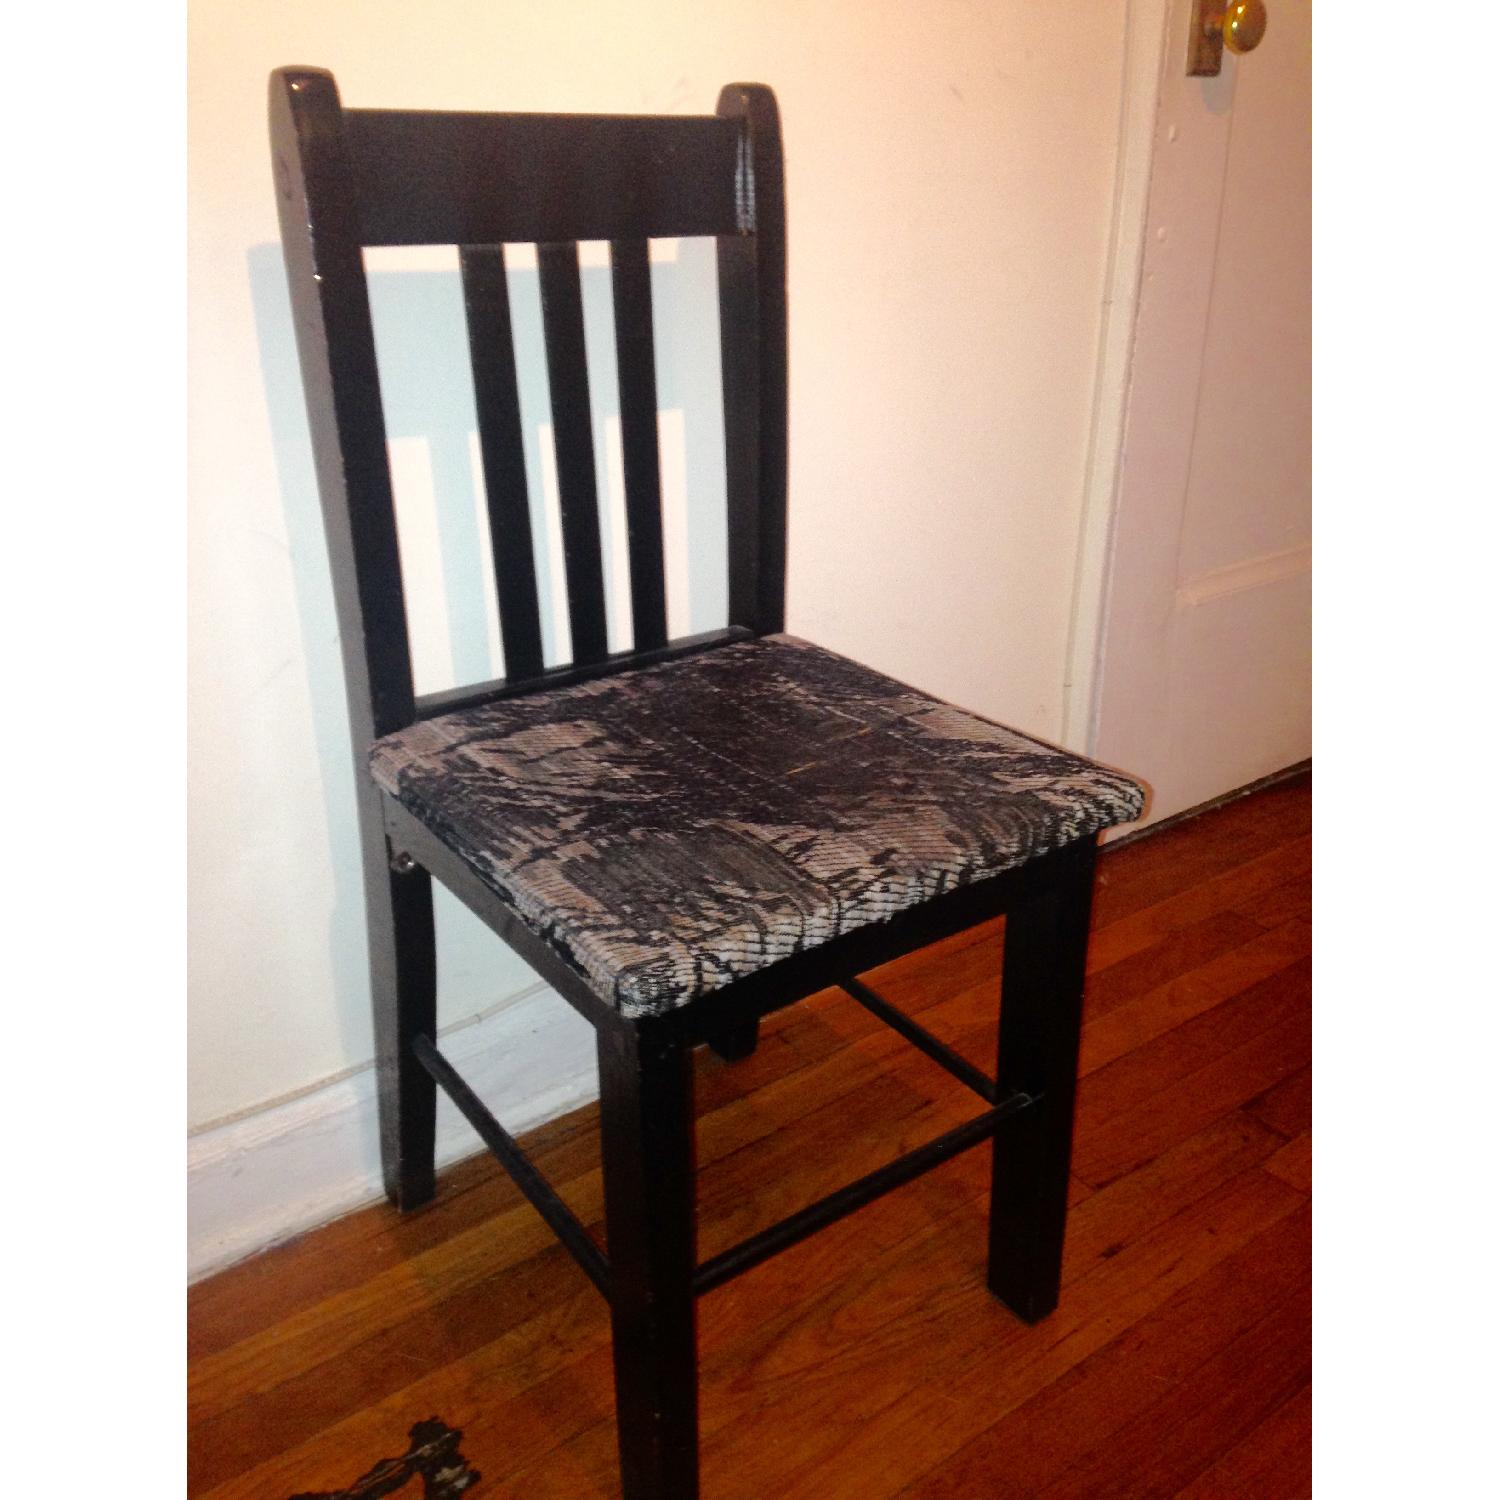 Retro Black Accent/Dining Chair w/ Knitted Fabric Seat - image-1